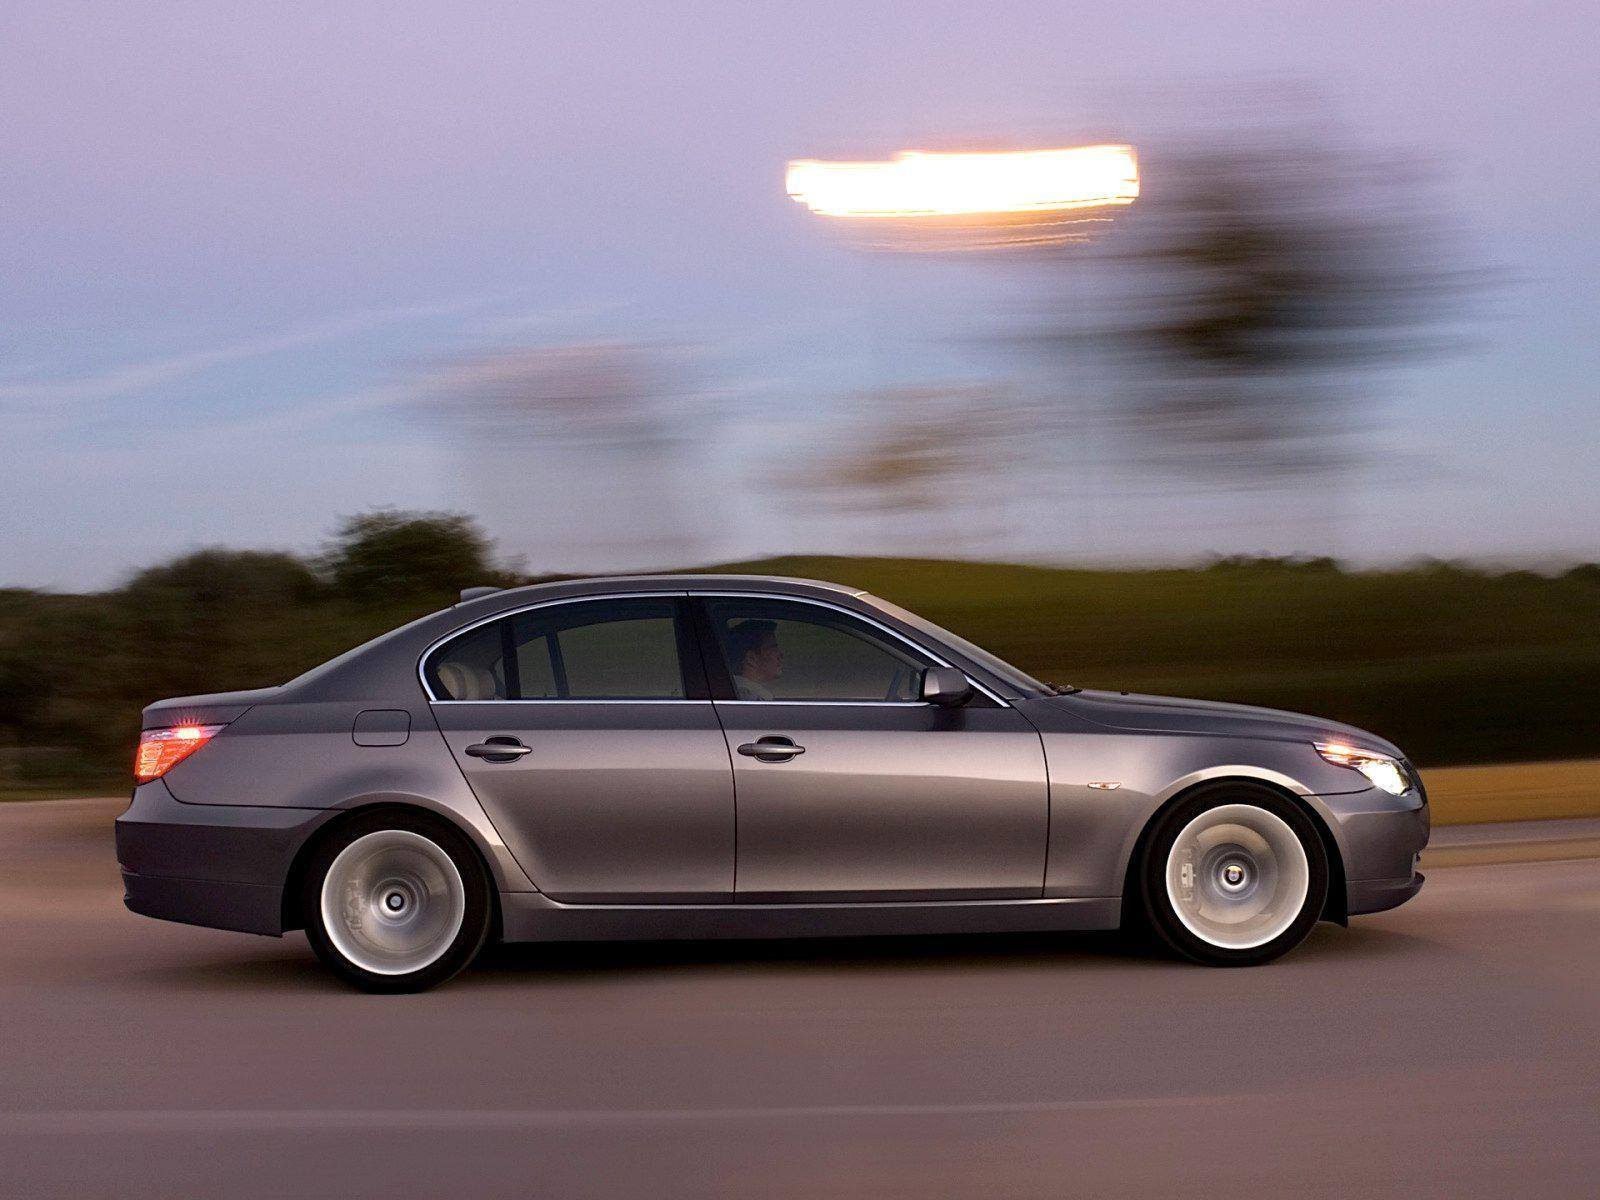 2008 BMW 5 Series Wallpaper 14 - 1600x1200